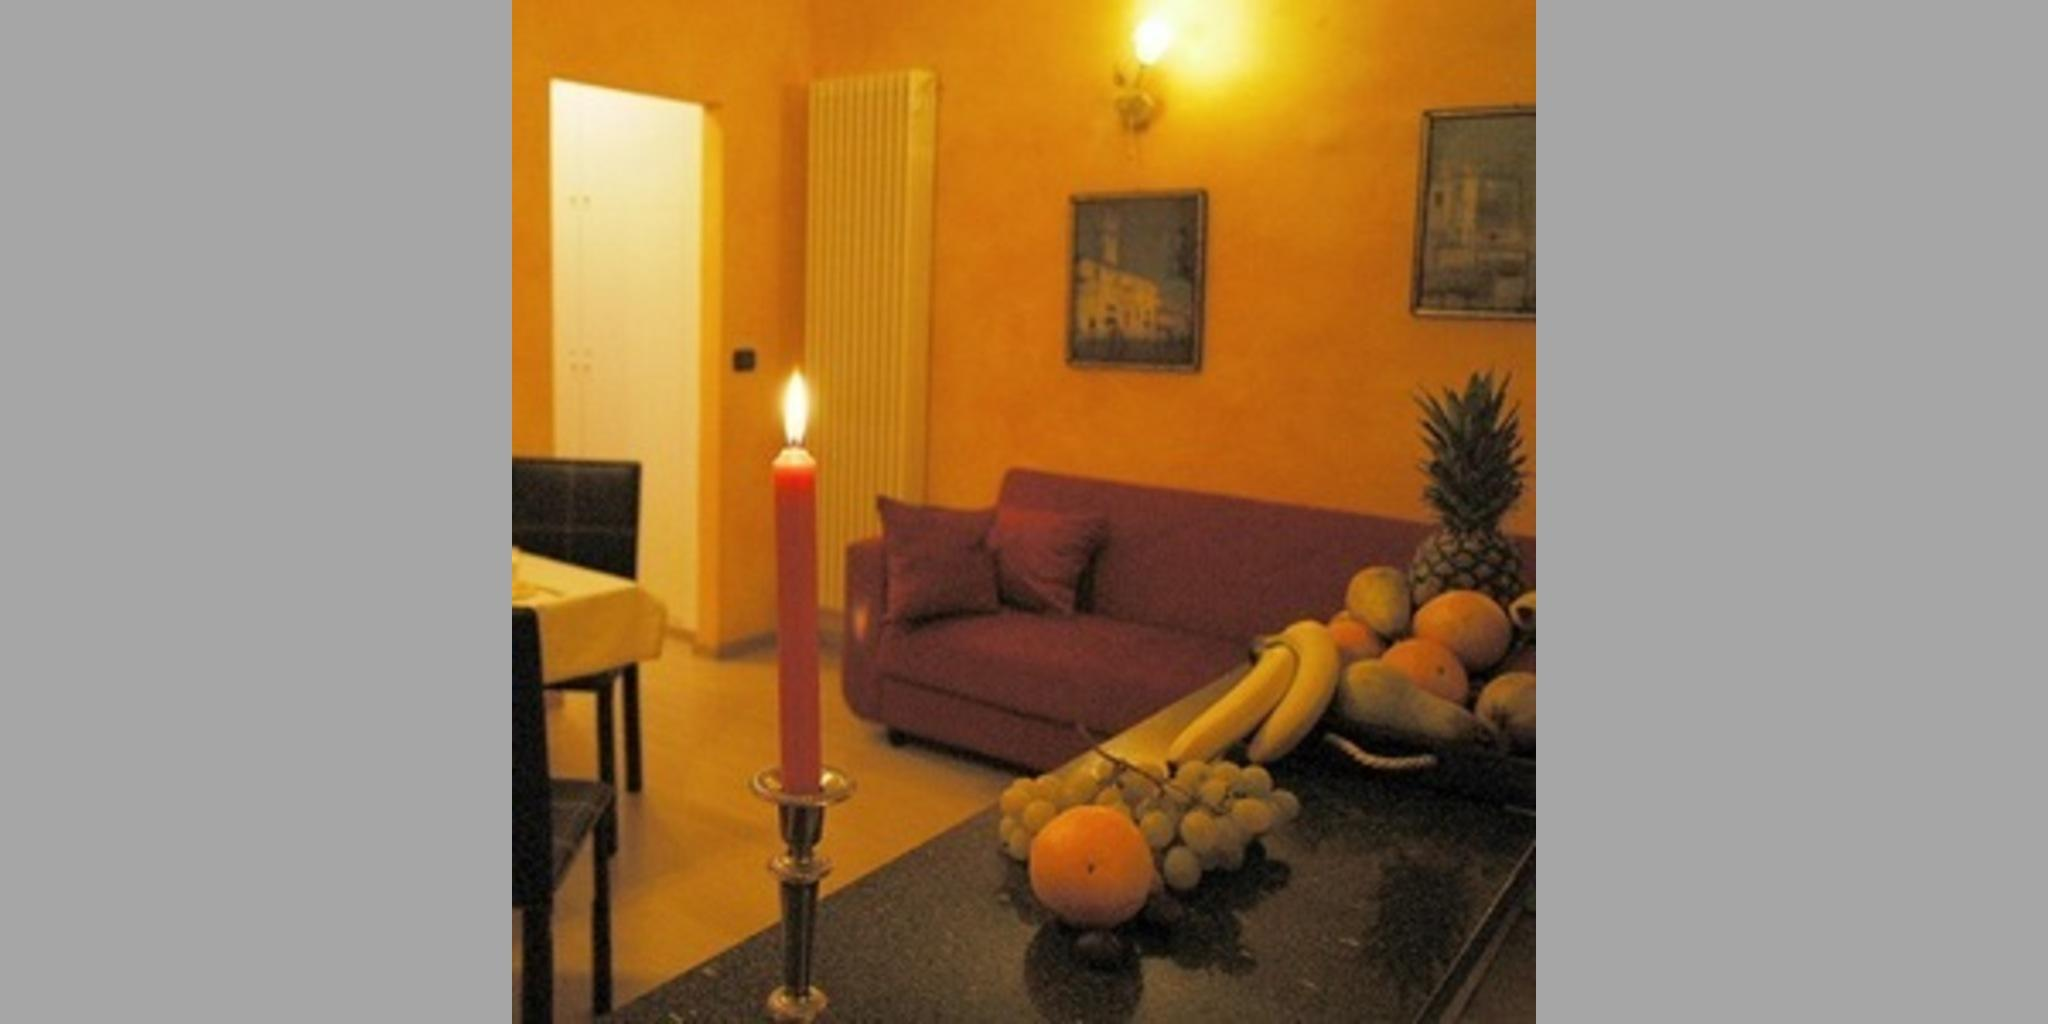 Bed & Breakfast Ascoli Piceno - Ascoli